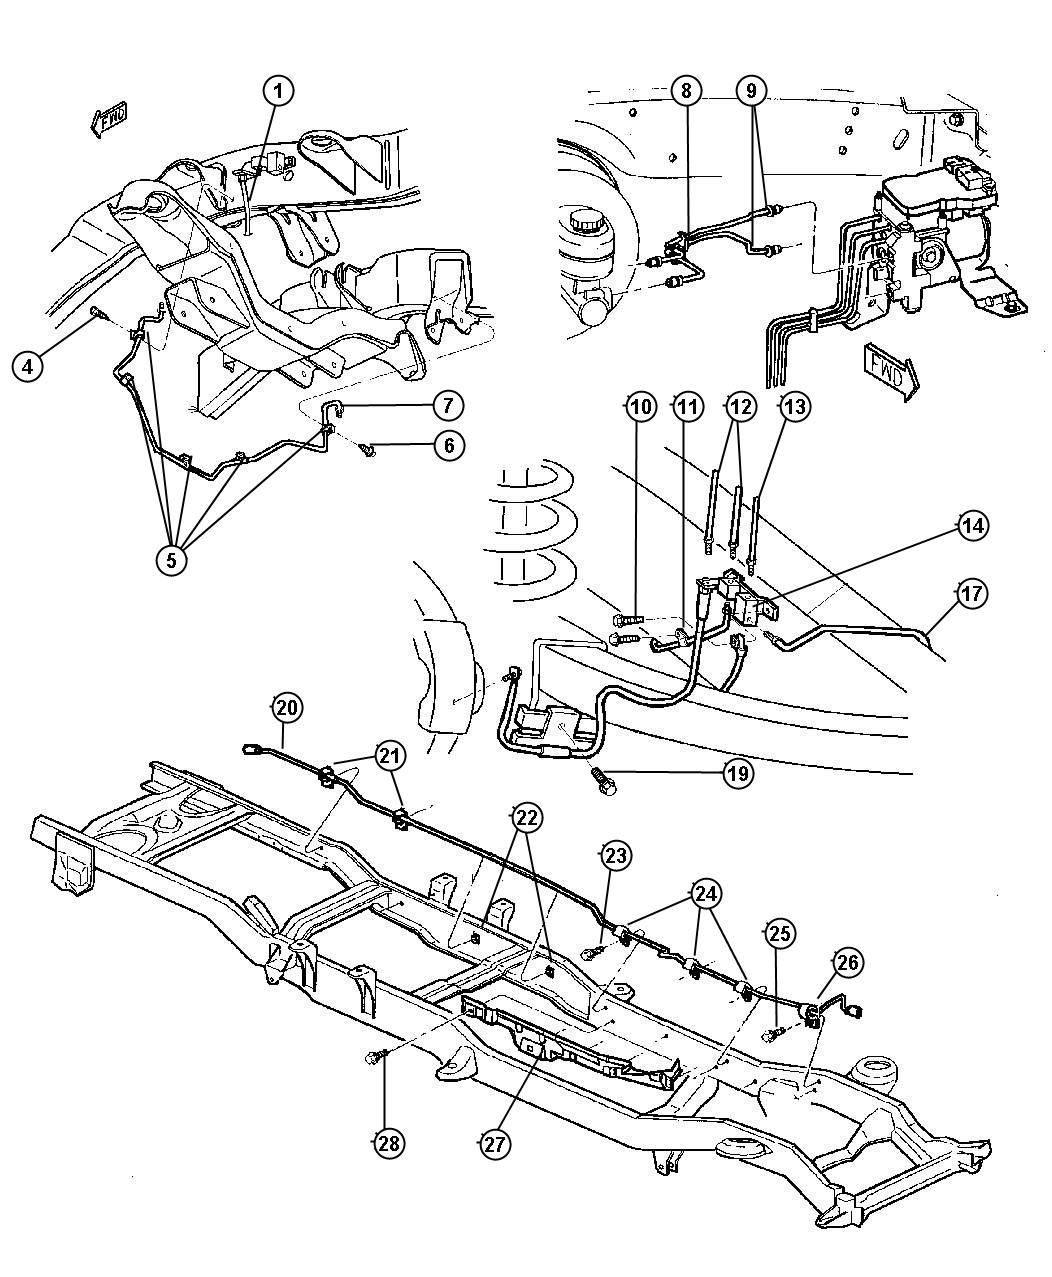 1998 dodge ram 1500 front end diagram